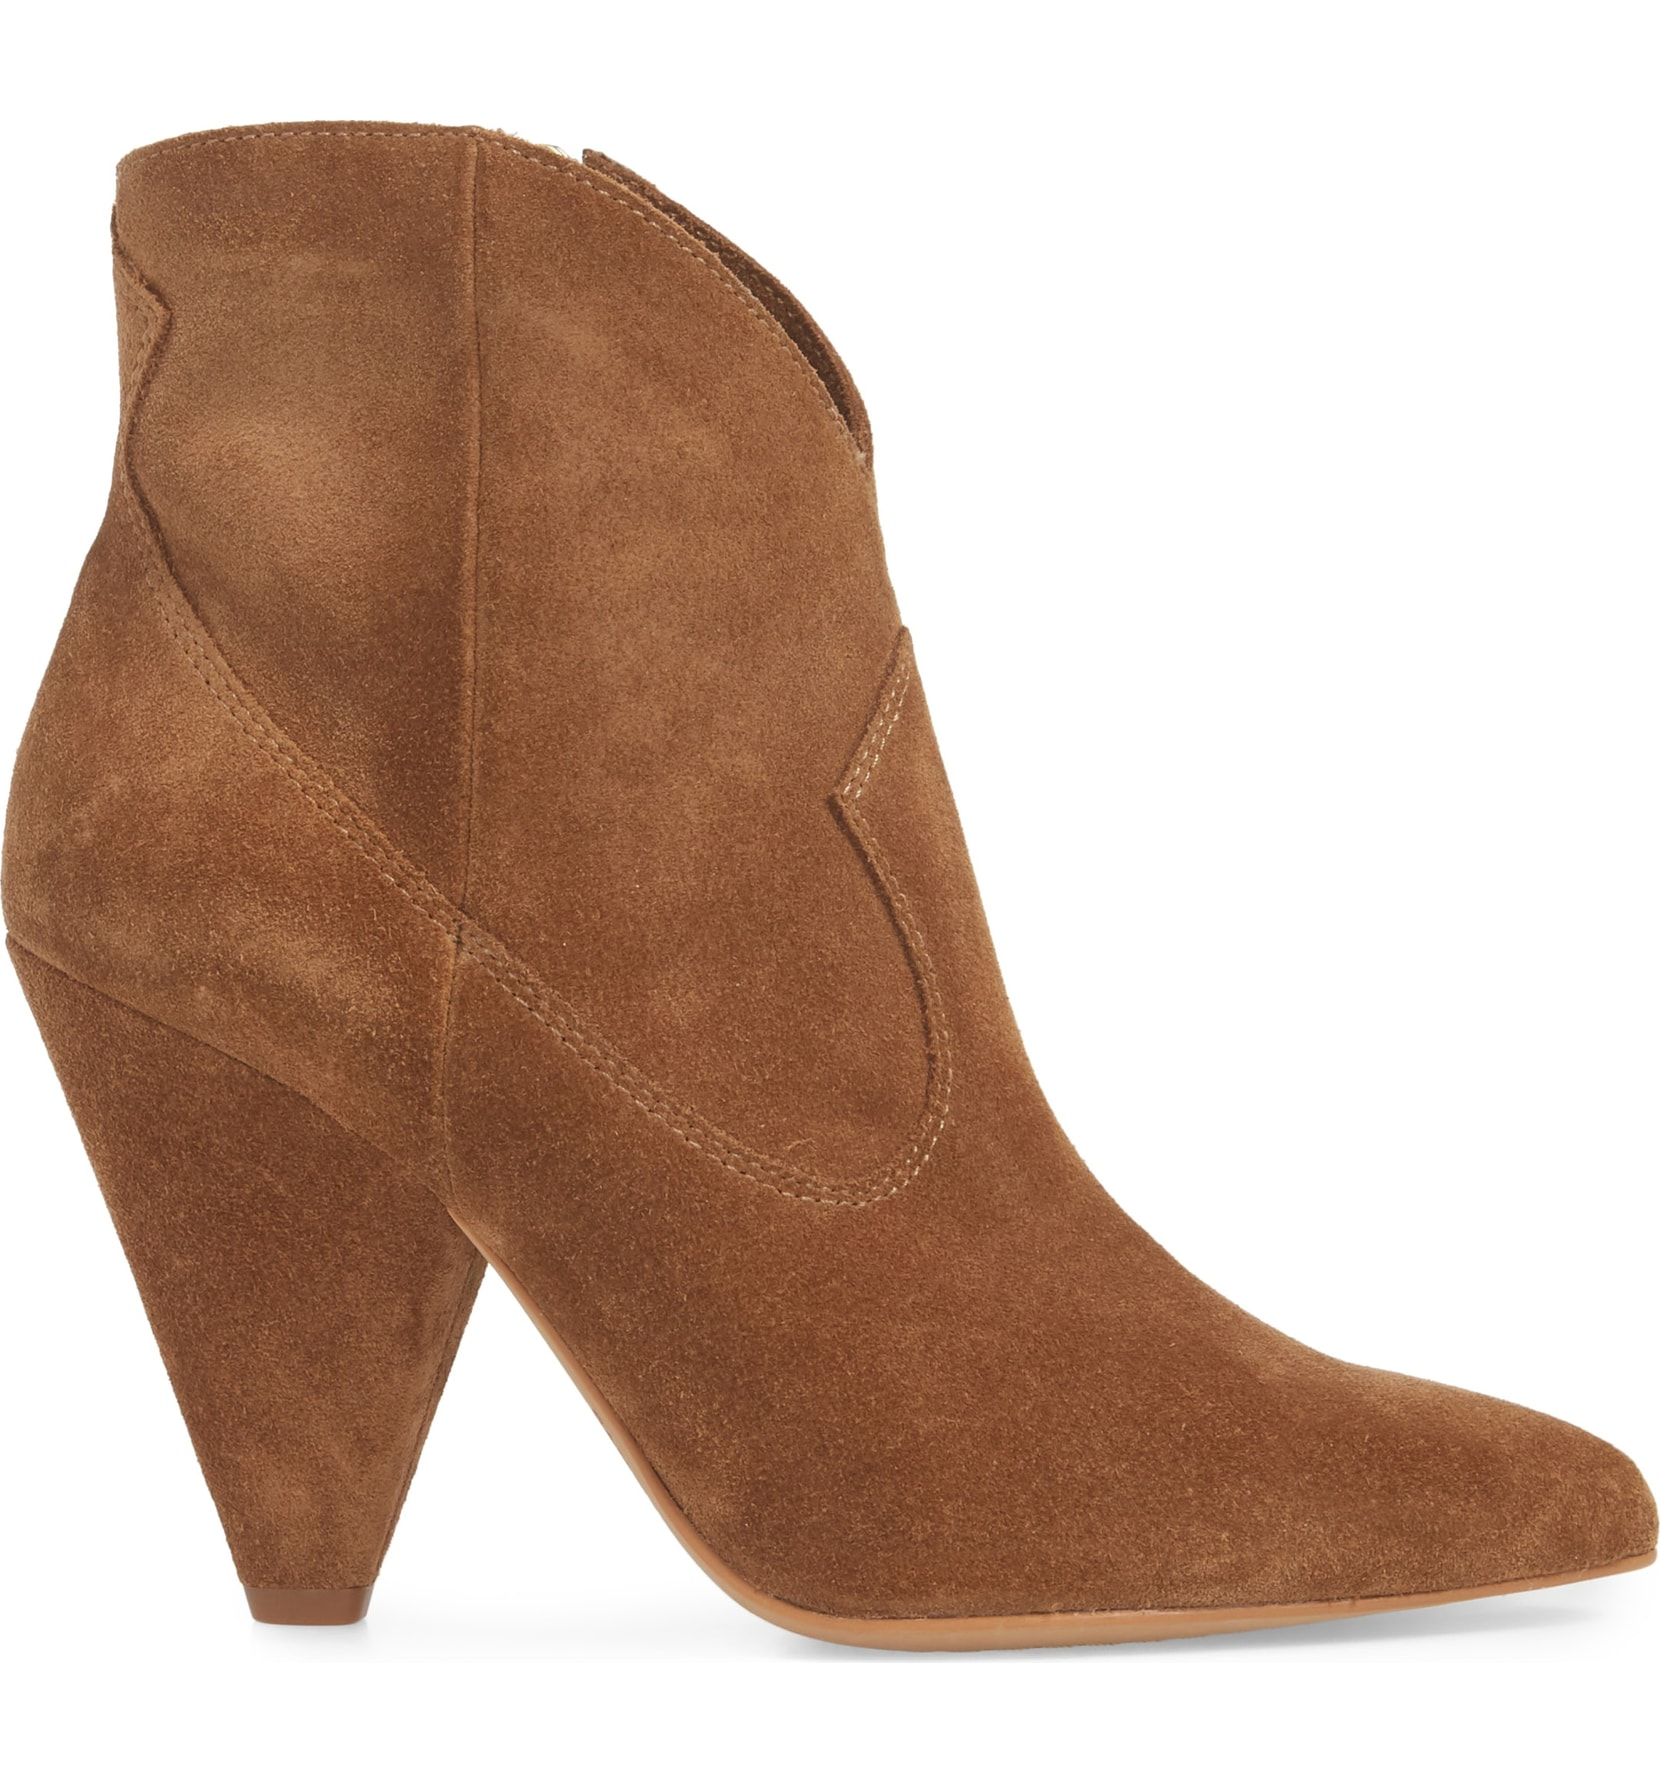 Vince Camuto Courtesy Nordstrom